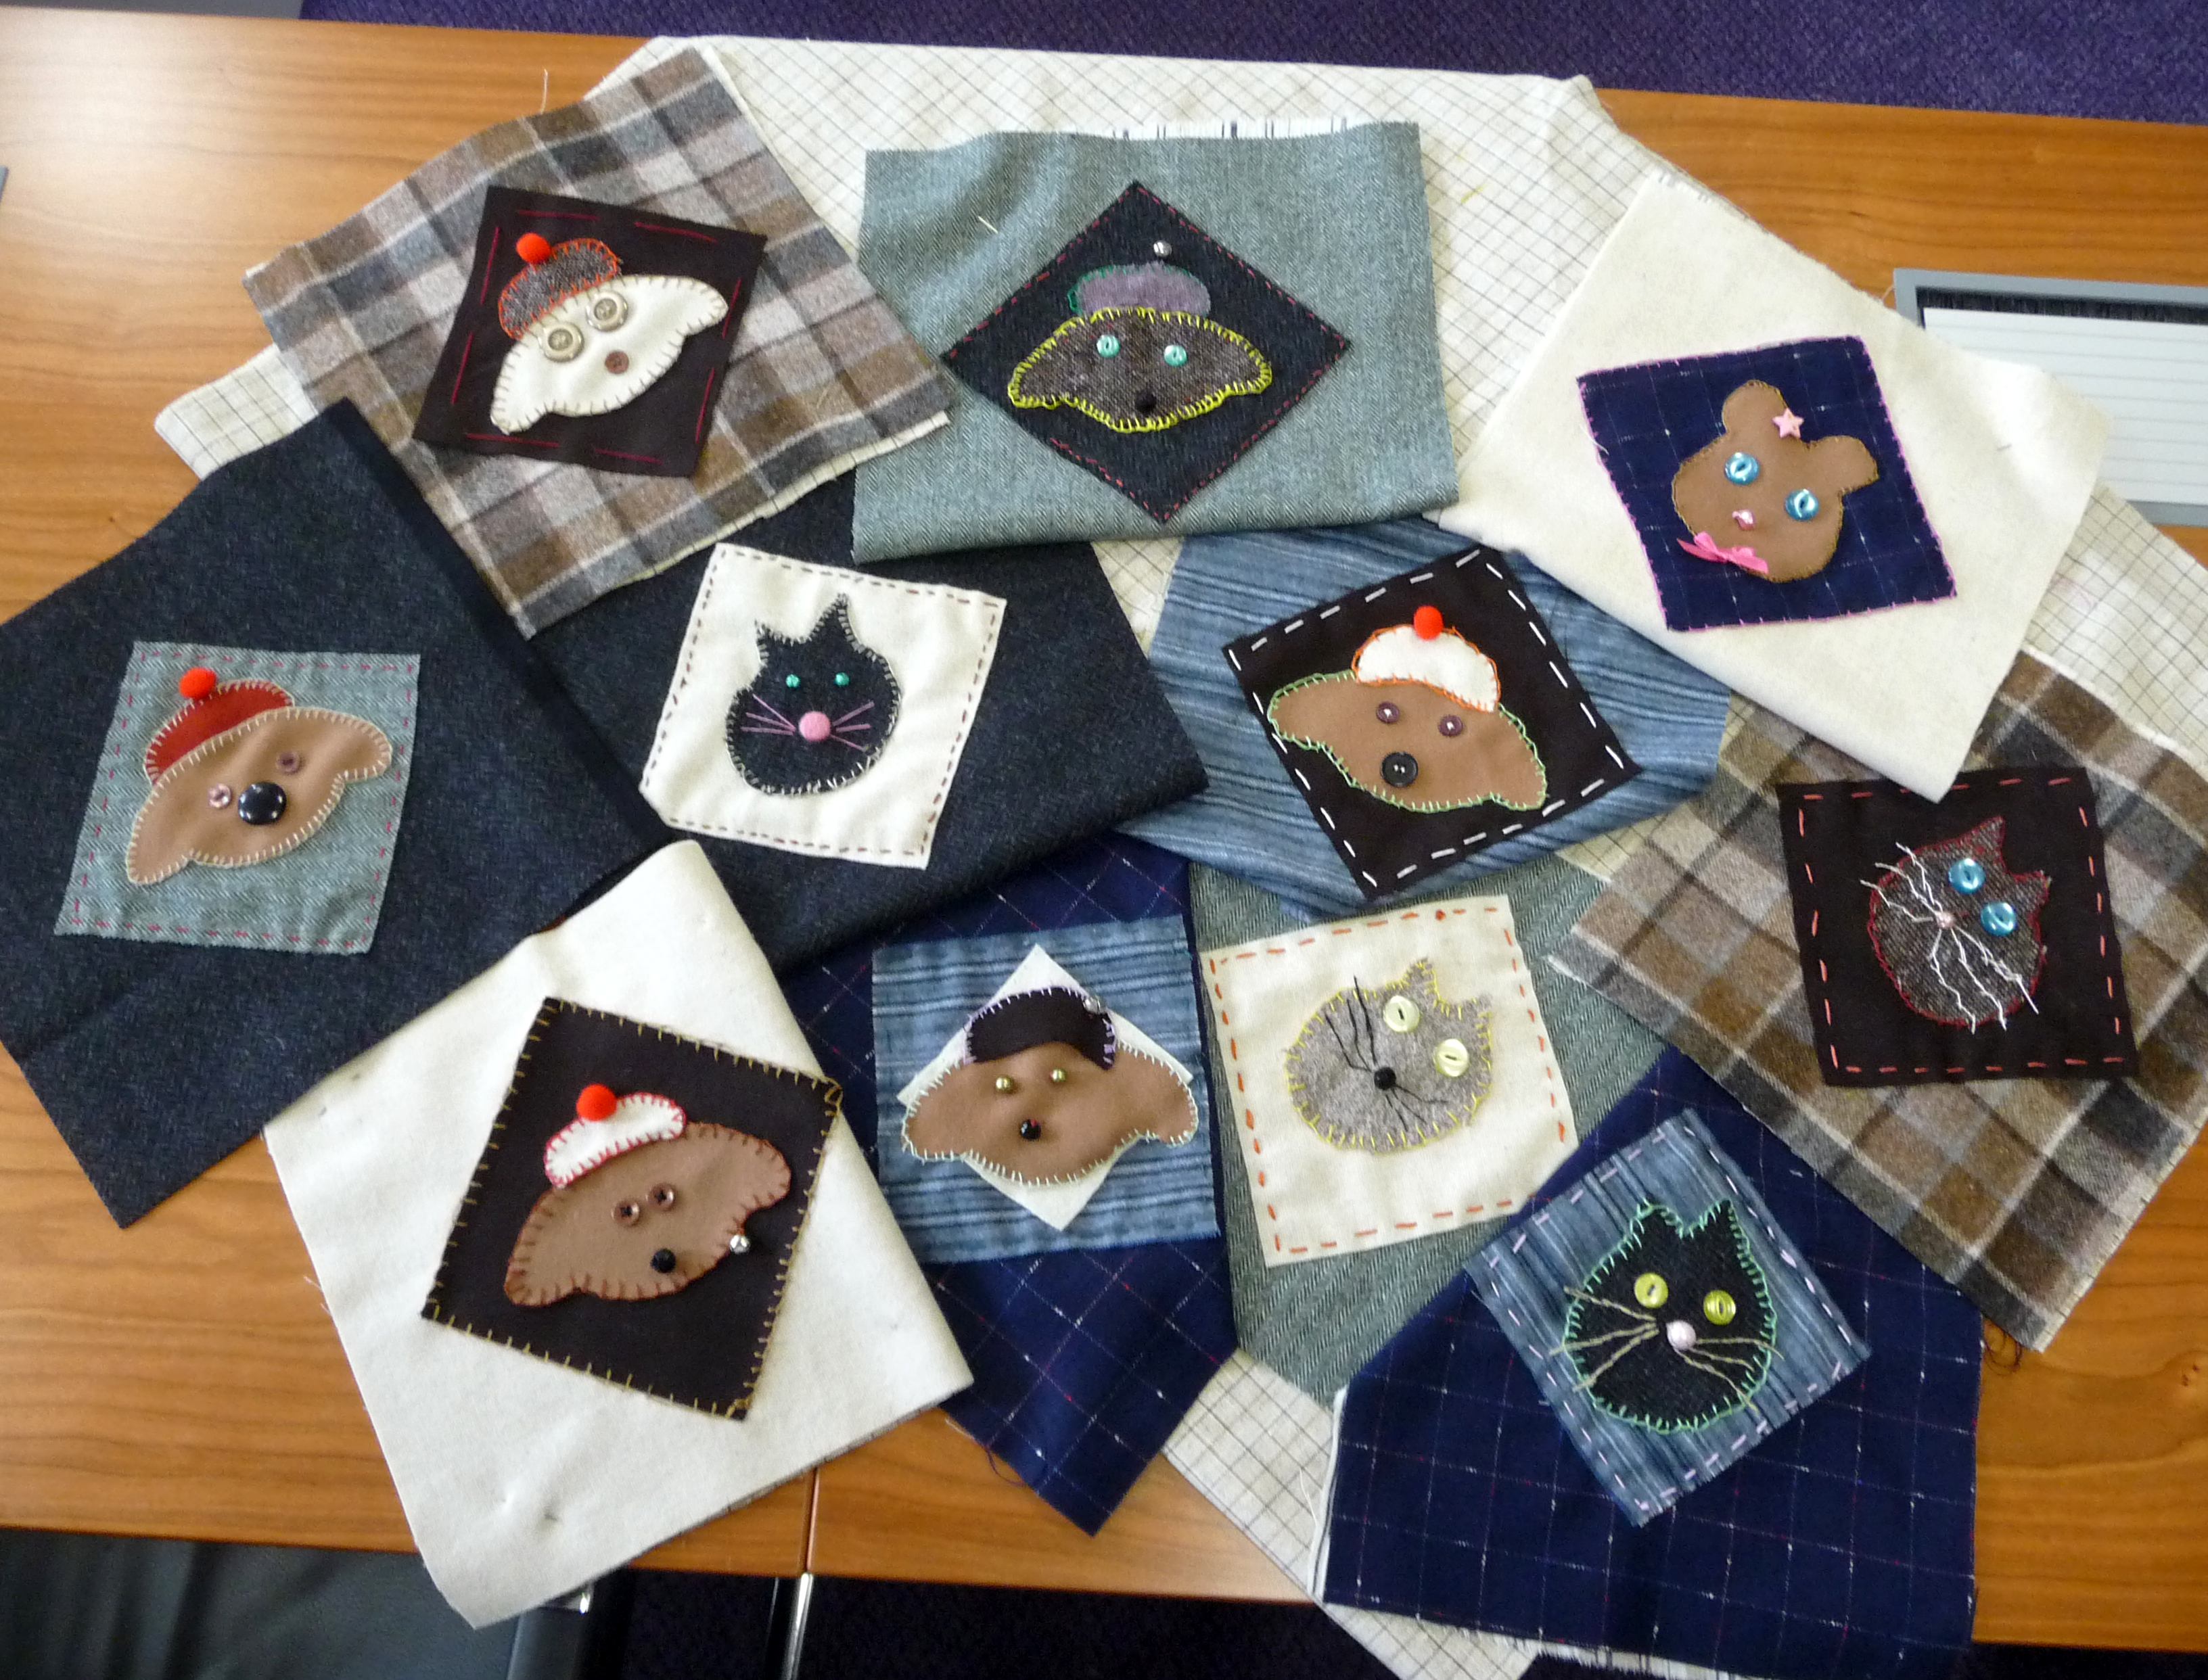 Lots of tweed animals at the end of the session, ready to be made into cushions